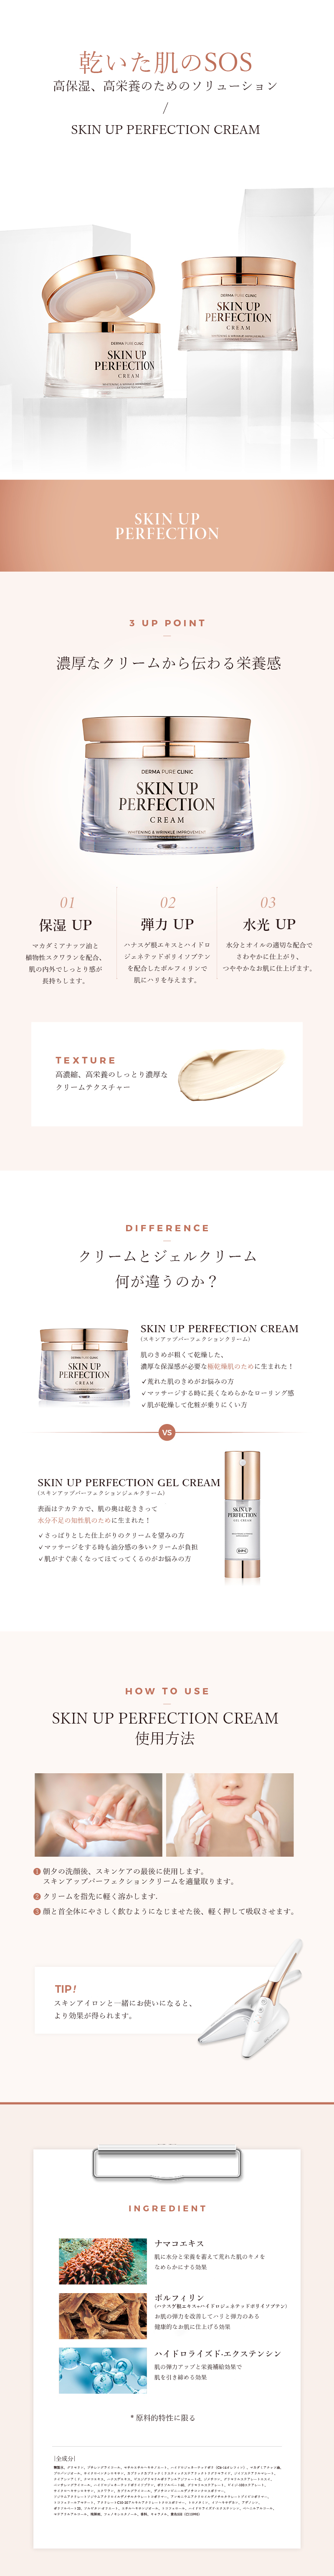 DPC SkinUpPerfection Cream 商品説明